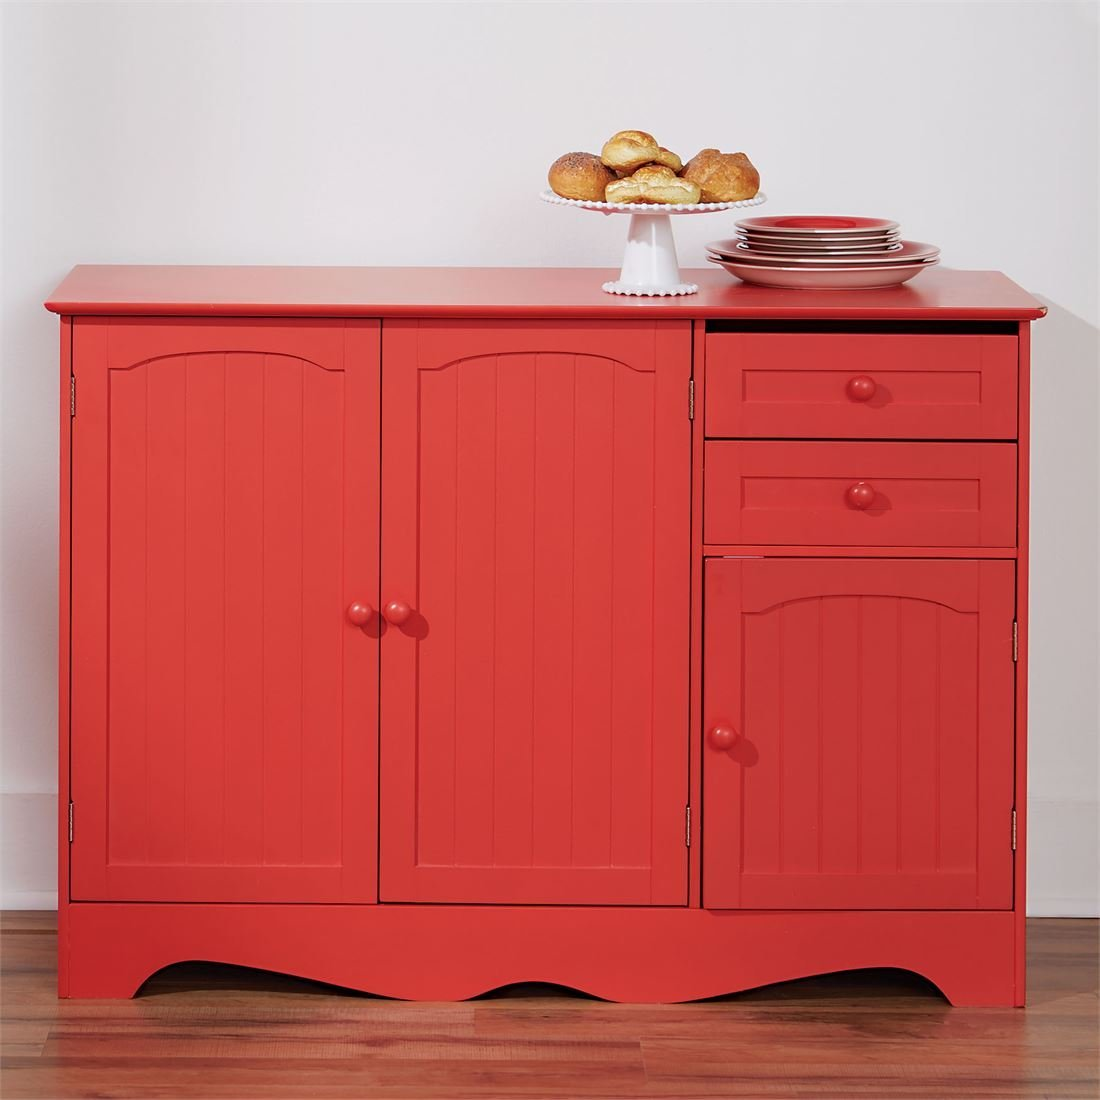 Red Kitchen Cabinets: Making A Bold Statement